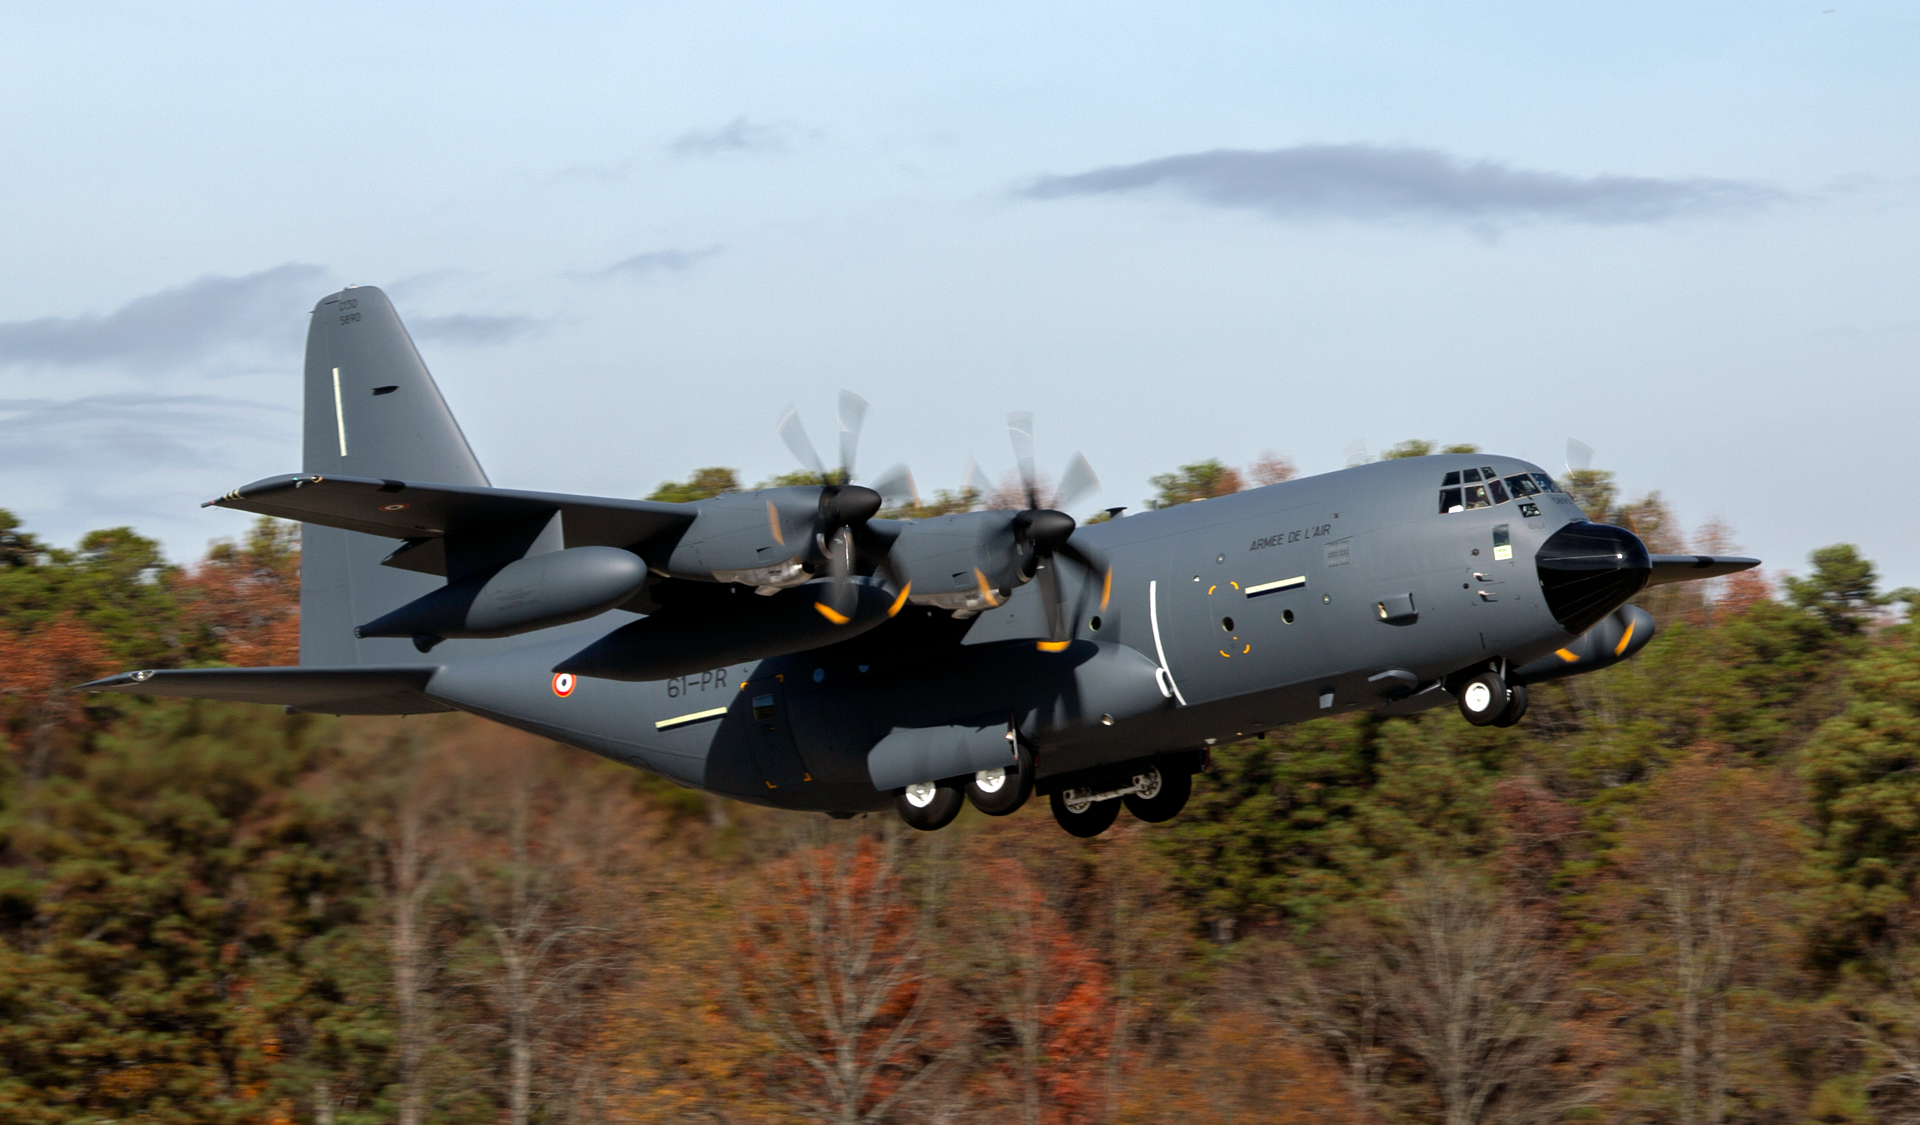 France's second KC-130J Super Hercules aerial refueler takes off from Lockheed Martin's facility in Marietta, Georgia, upon delivery in 2019.